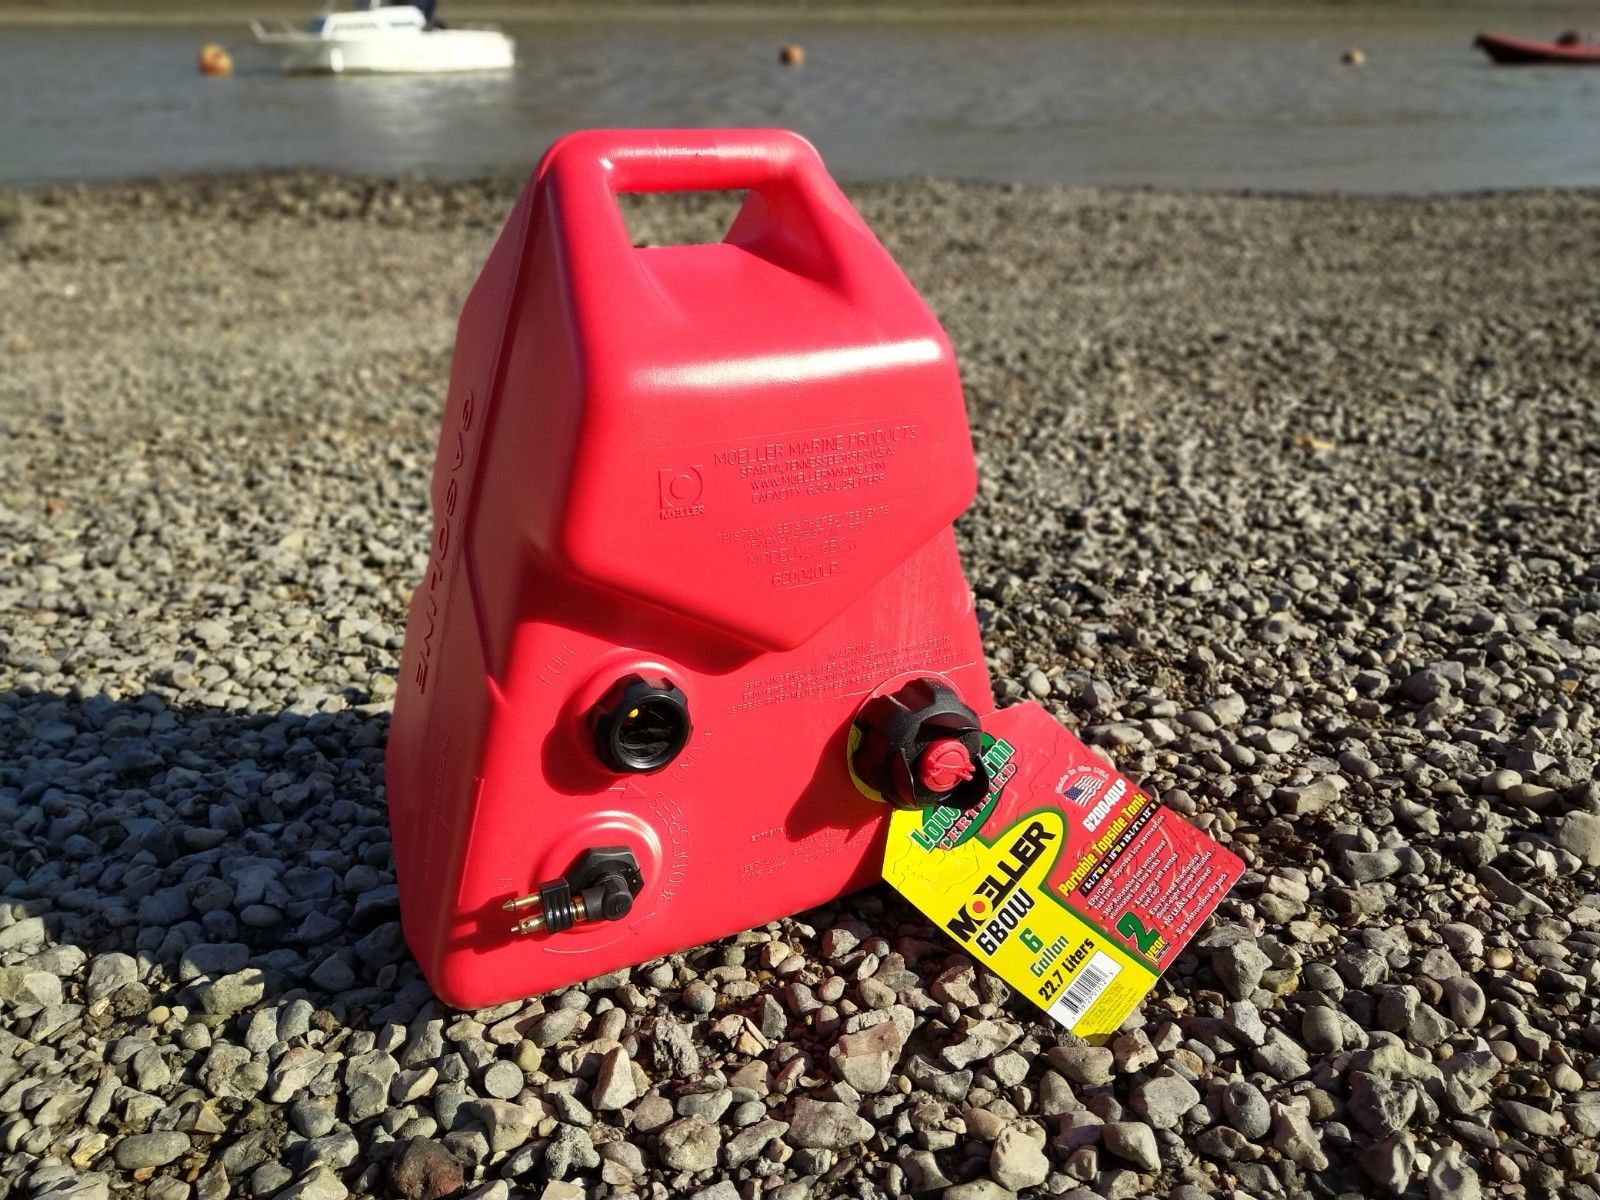 5 Gallon 23 Litre Yamaha Outboard Fuel Petrol Tank to fit Bow of Boat or Dinghy